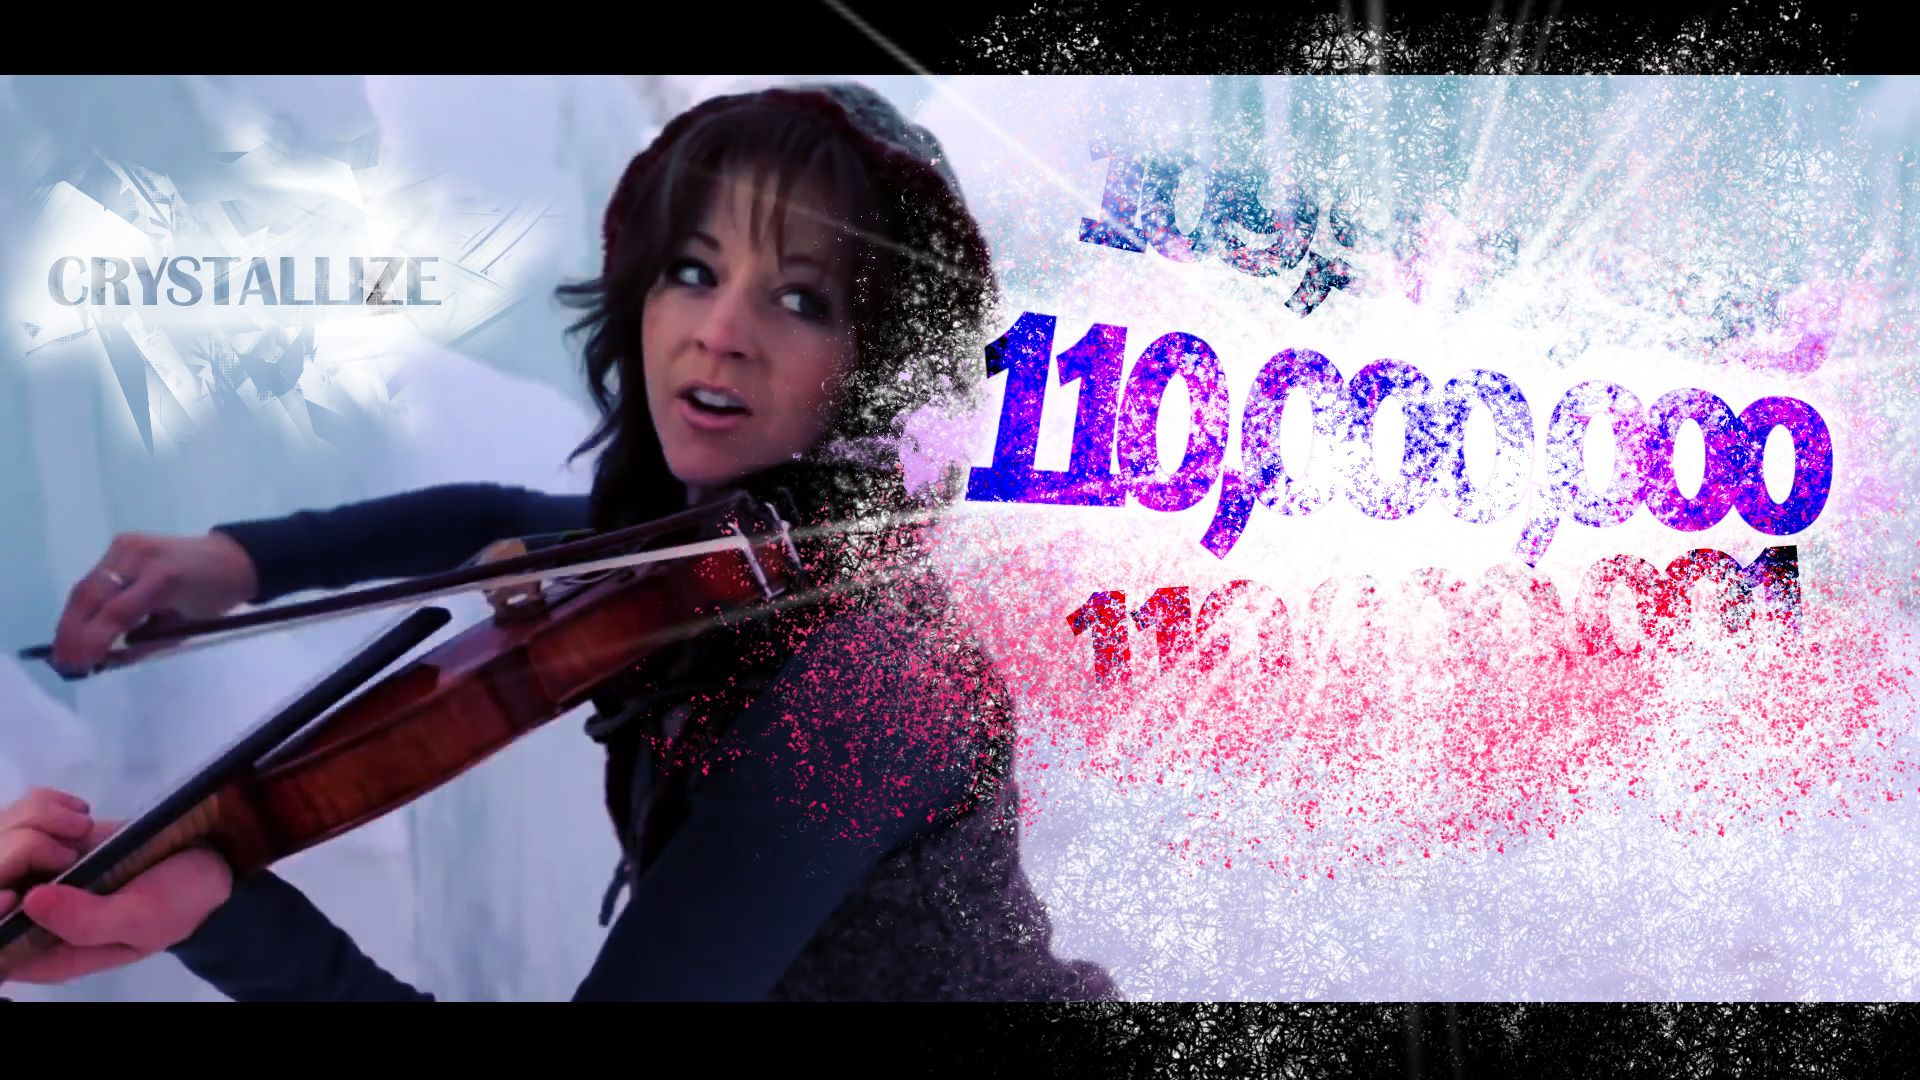 Lindsey Stirling 110 Mio Crystallize YouTube views